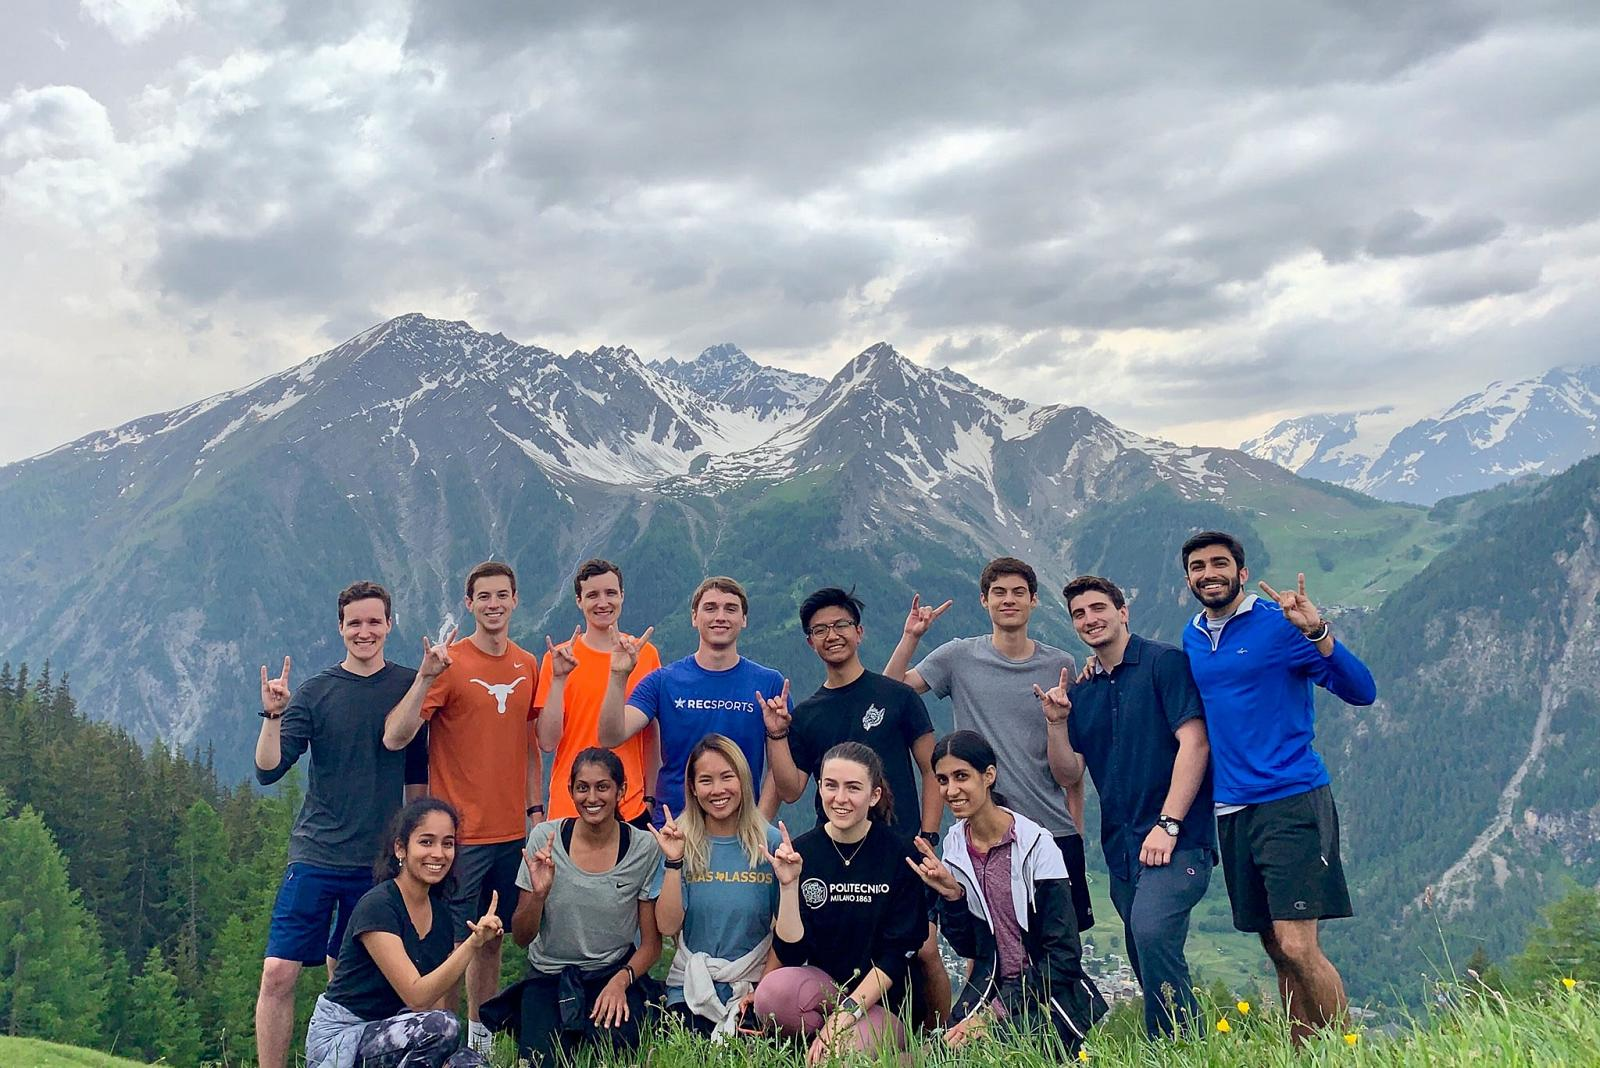 students smiling in front of a mountain